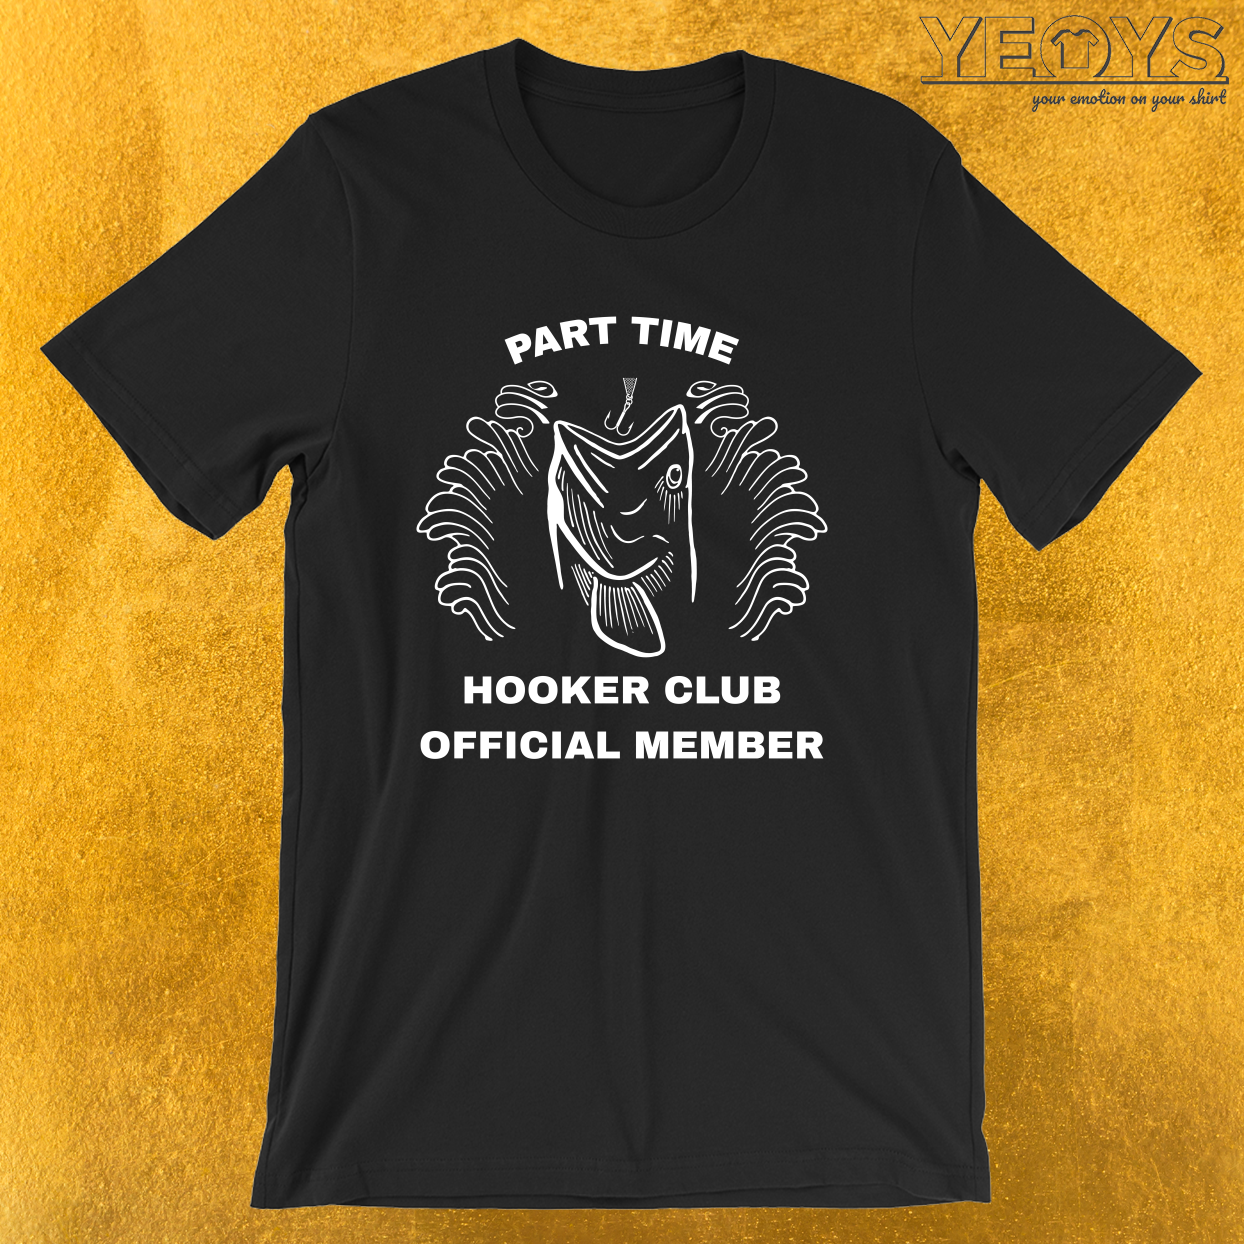 Part Time Hooker Club Official Member – Funny Fishing Trip Tee